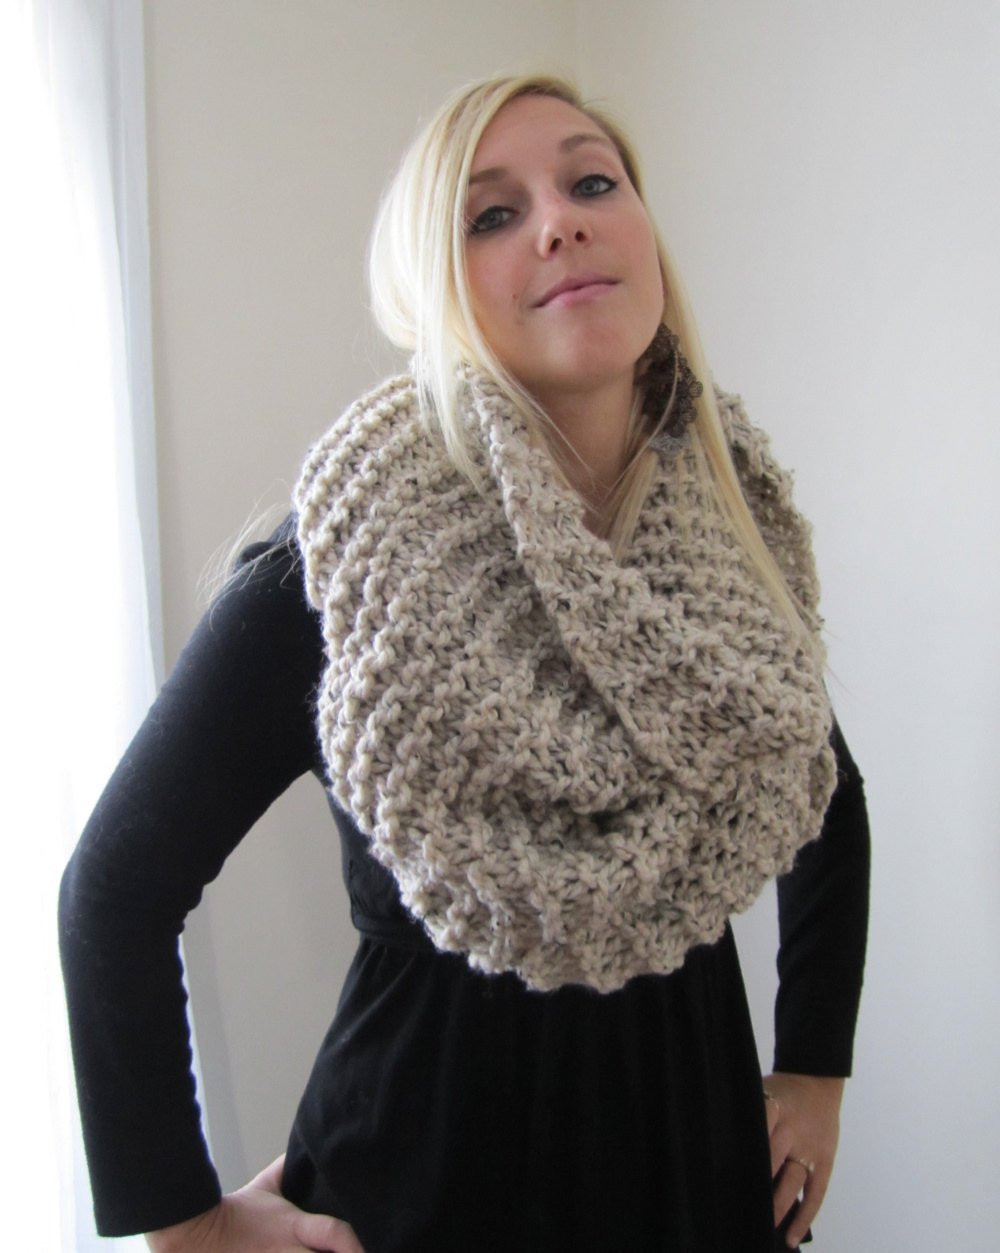 Luxury Super Snuggly Chunky Knit Cowl Oatmeal Infinity Scarf Chunky Knit Scarf Pattern Of Adorable 50 Ideas Chunky Knit Scarf Pattern